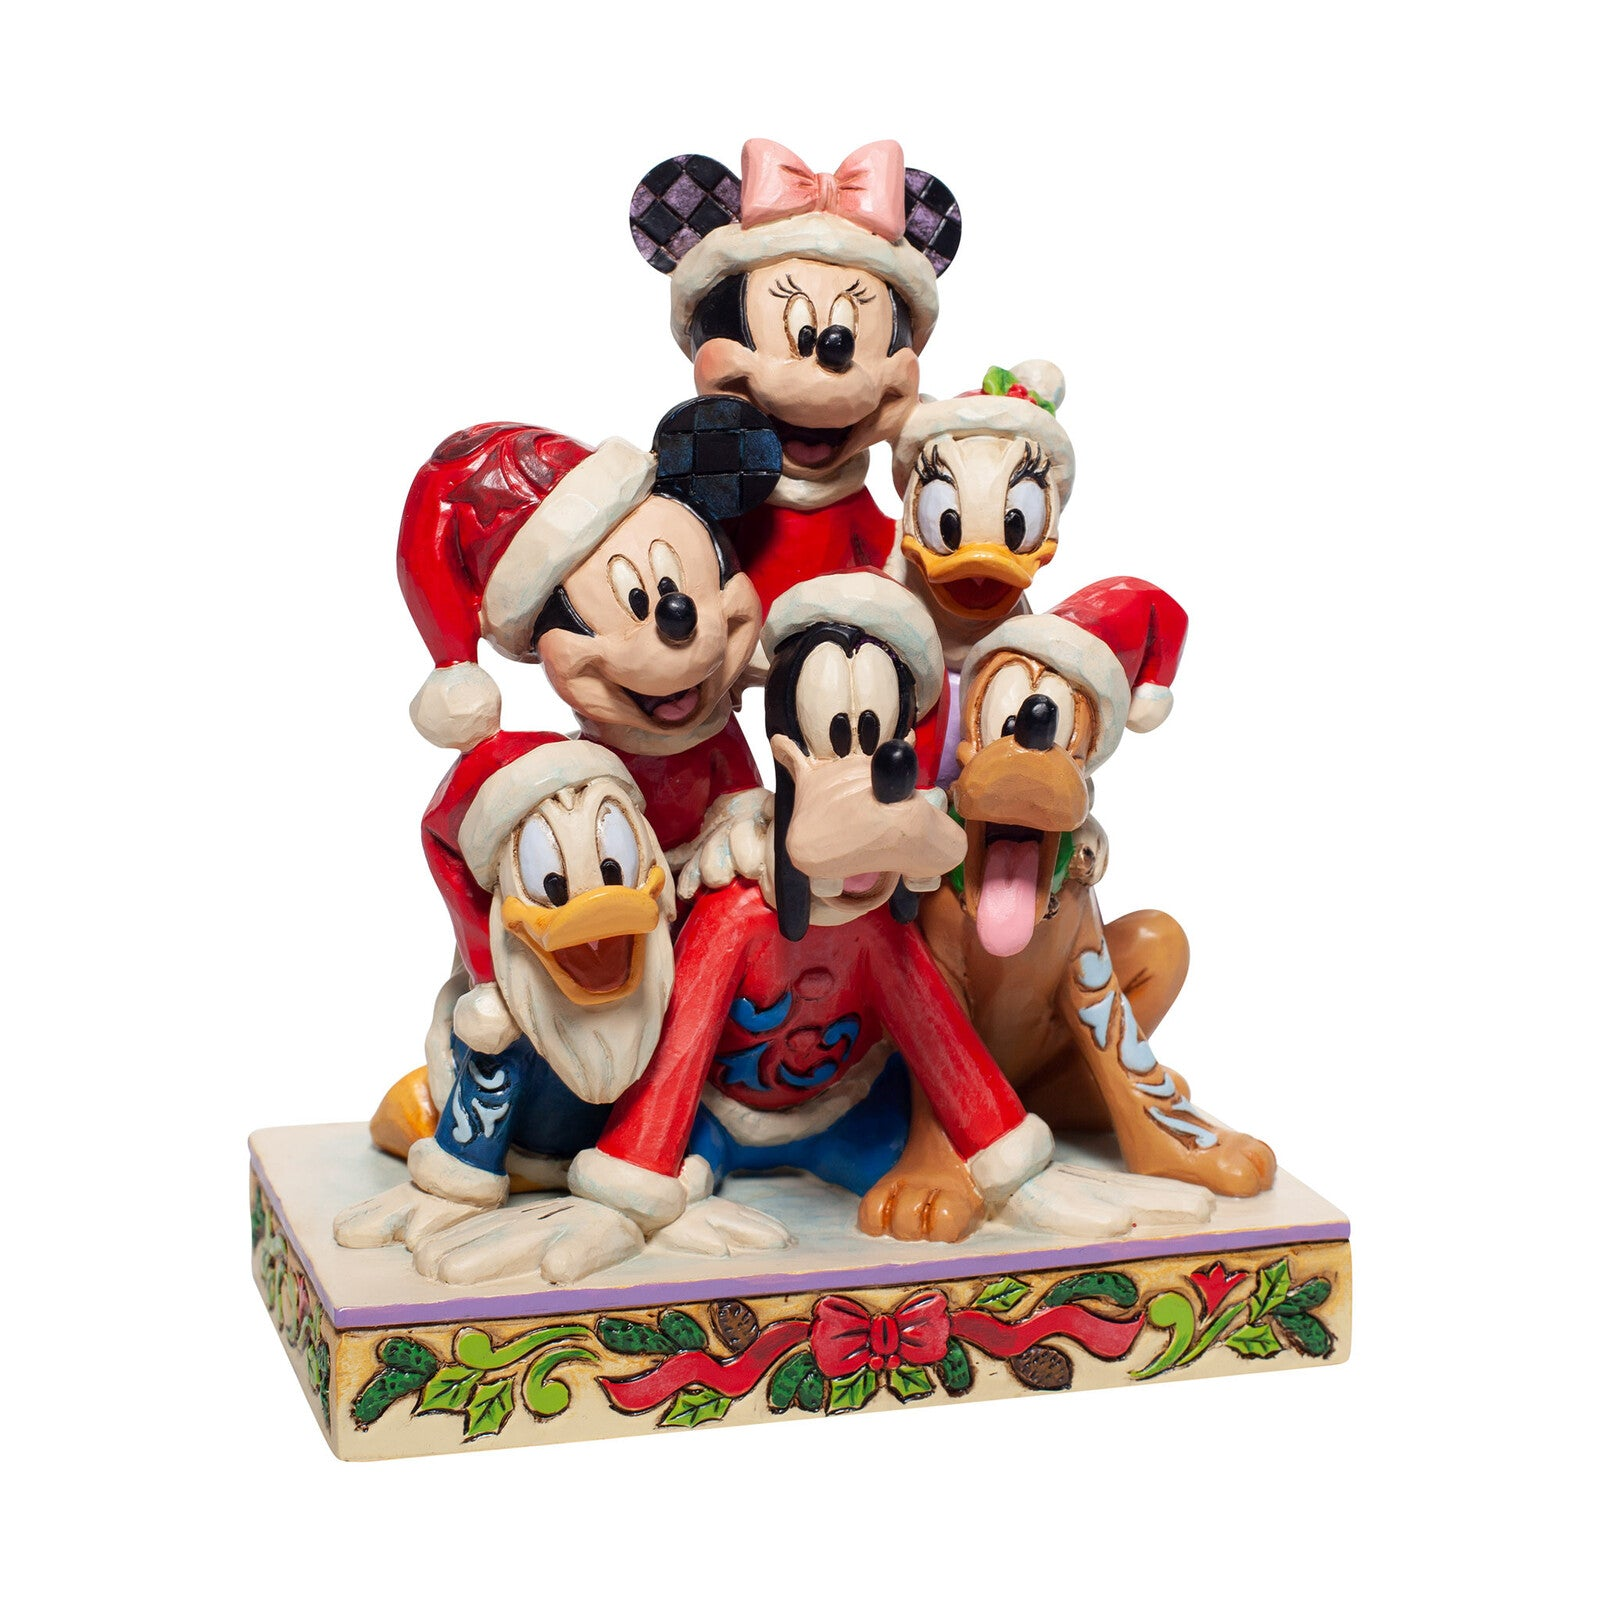 Disney Traditions - Mickey & Friends, Piled High with Holiday Cheer - 15cm